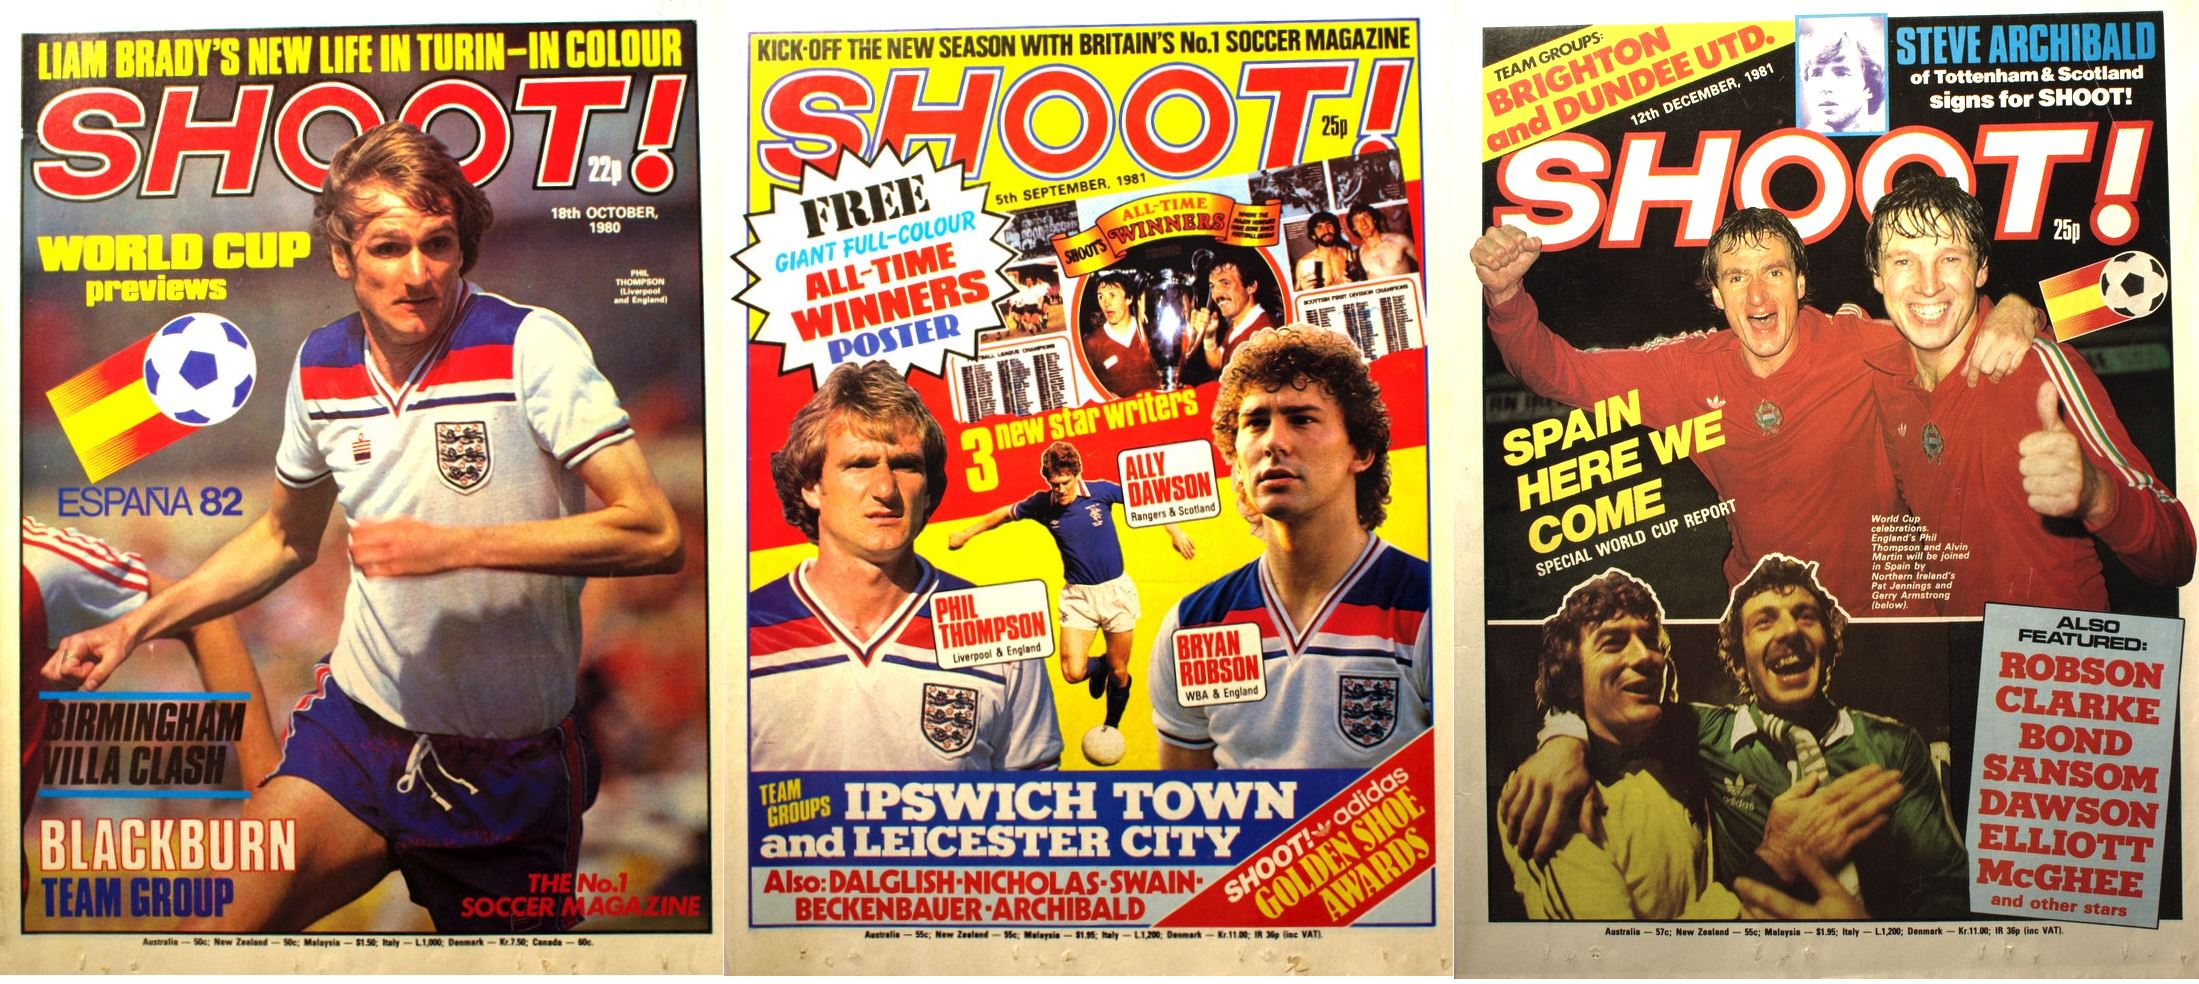 Phil Thompson on the cover of Shoot! as an England player